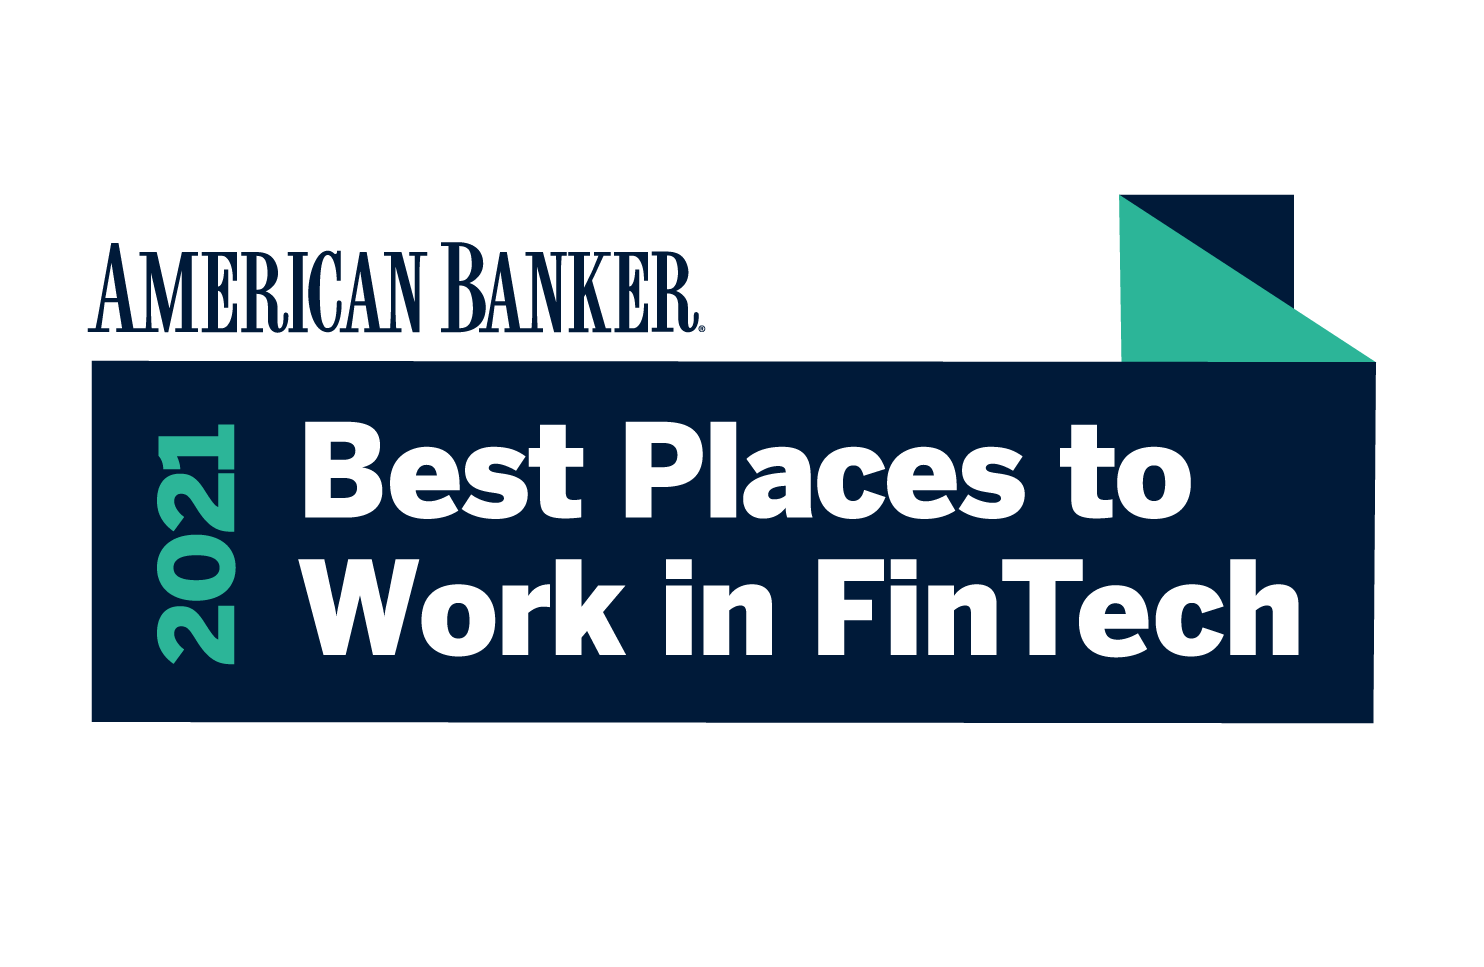 American Banker Best Places to Work in Fintech 2021